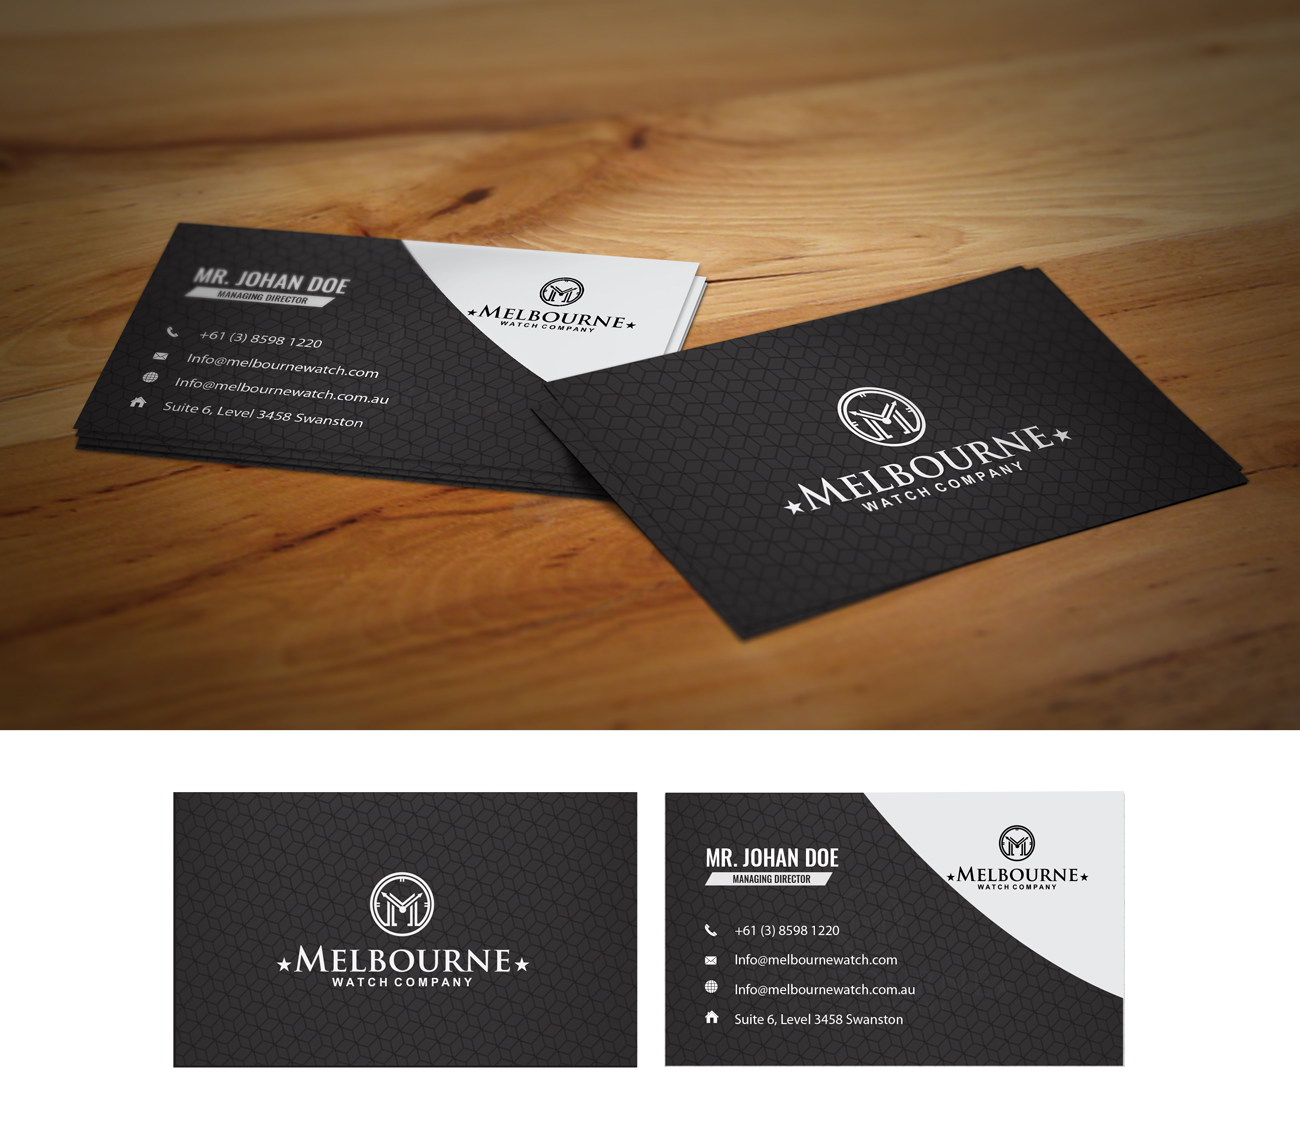 Business business card design for melbourne watch company pty ltd by business card design by black stallions impressive solutions for melbourne watch company pty ltd design colourmoves